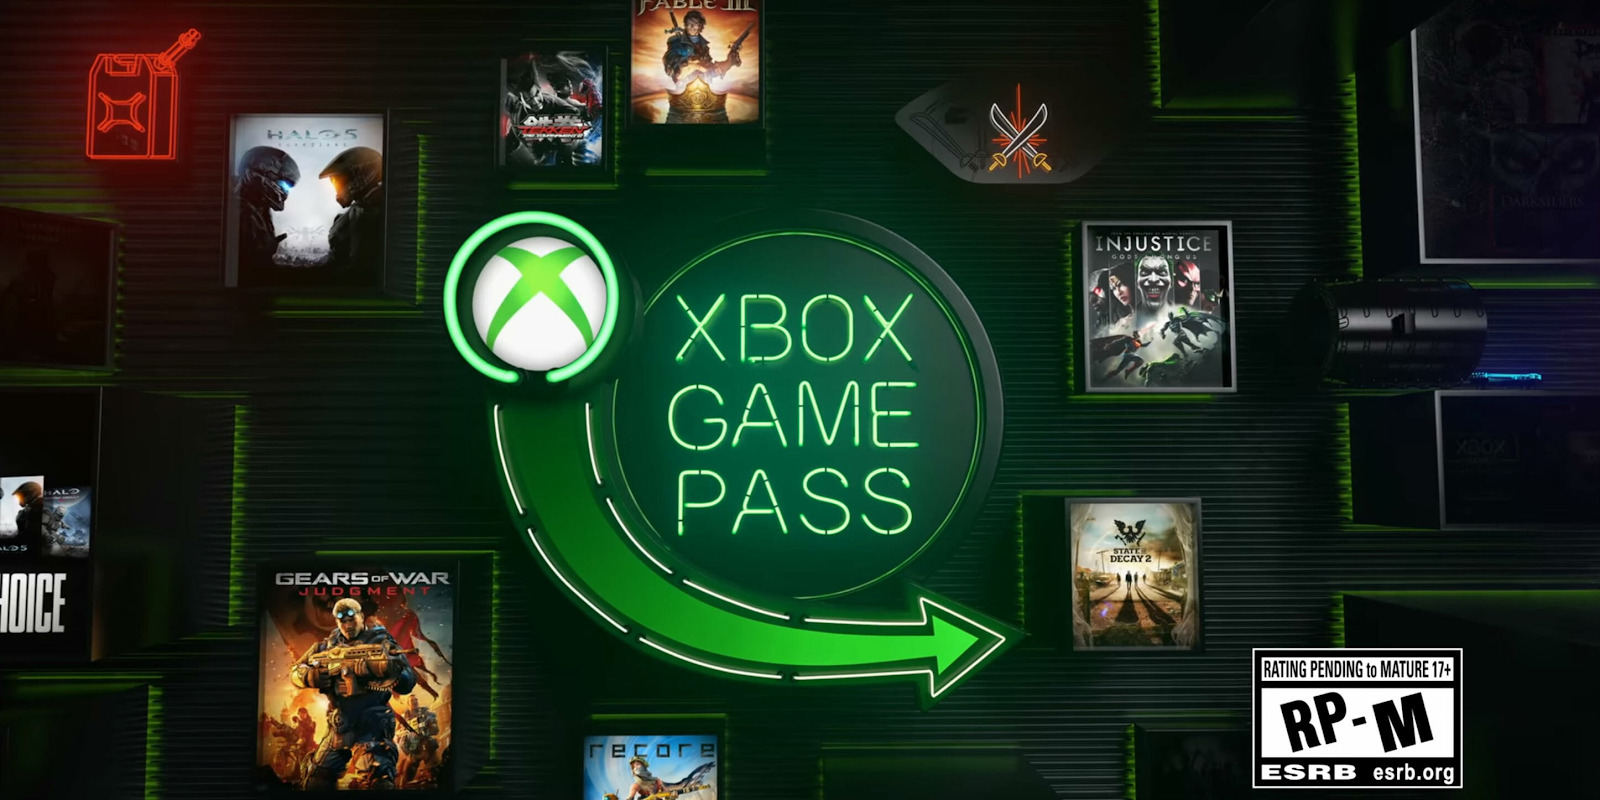 xbox game pass subscription how to cancel xbox game pass subscription cancel xbox game pass subscription xbox game pass cancel subscription xbox game pass subscription cancel xbox game pass ultimate subscription how to cancel subscription for xbox game pass how to end your xbox game pass subscription xbox game pass yearly subscription xbox ultimate game pass 1 year subscription how to end your subscription on xbox game pass xbox game pass end subscription xbox game pass ultimate 1 year subscription 1 month xbox game pass subscription trial how to change xbox game pass subscription how to remove xbox game pass subscription xbox game pass pc yearly subscription xbox game pass subscription cost xbox game pass year subscription price xbox game pass monthly subscription cancel xbox game pass subscription online does xbox game pass ultimate have a yearly subscription how to cancel xbox game pass subscription online xbox game pass 3 month subscription xbox game pass daily subscription cancel game pass subscription on xbox how do i cancel my subscription to xbox game pass how do i end my xbox game pass subscription how much is xbox game pass subscription my xbox game pass subscription xbox game pass ultimate subscription not working xbox live game pass cancel subscription xbox ultimate game pass year subscription 1 month xbox game pass subscription